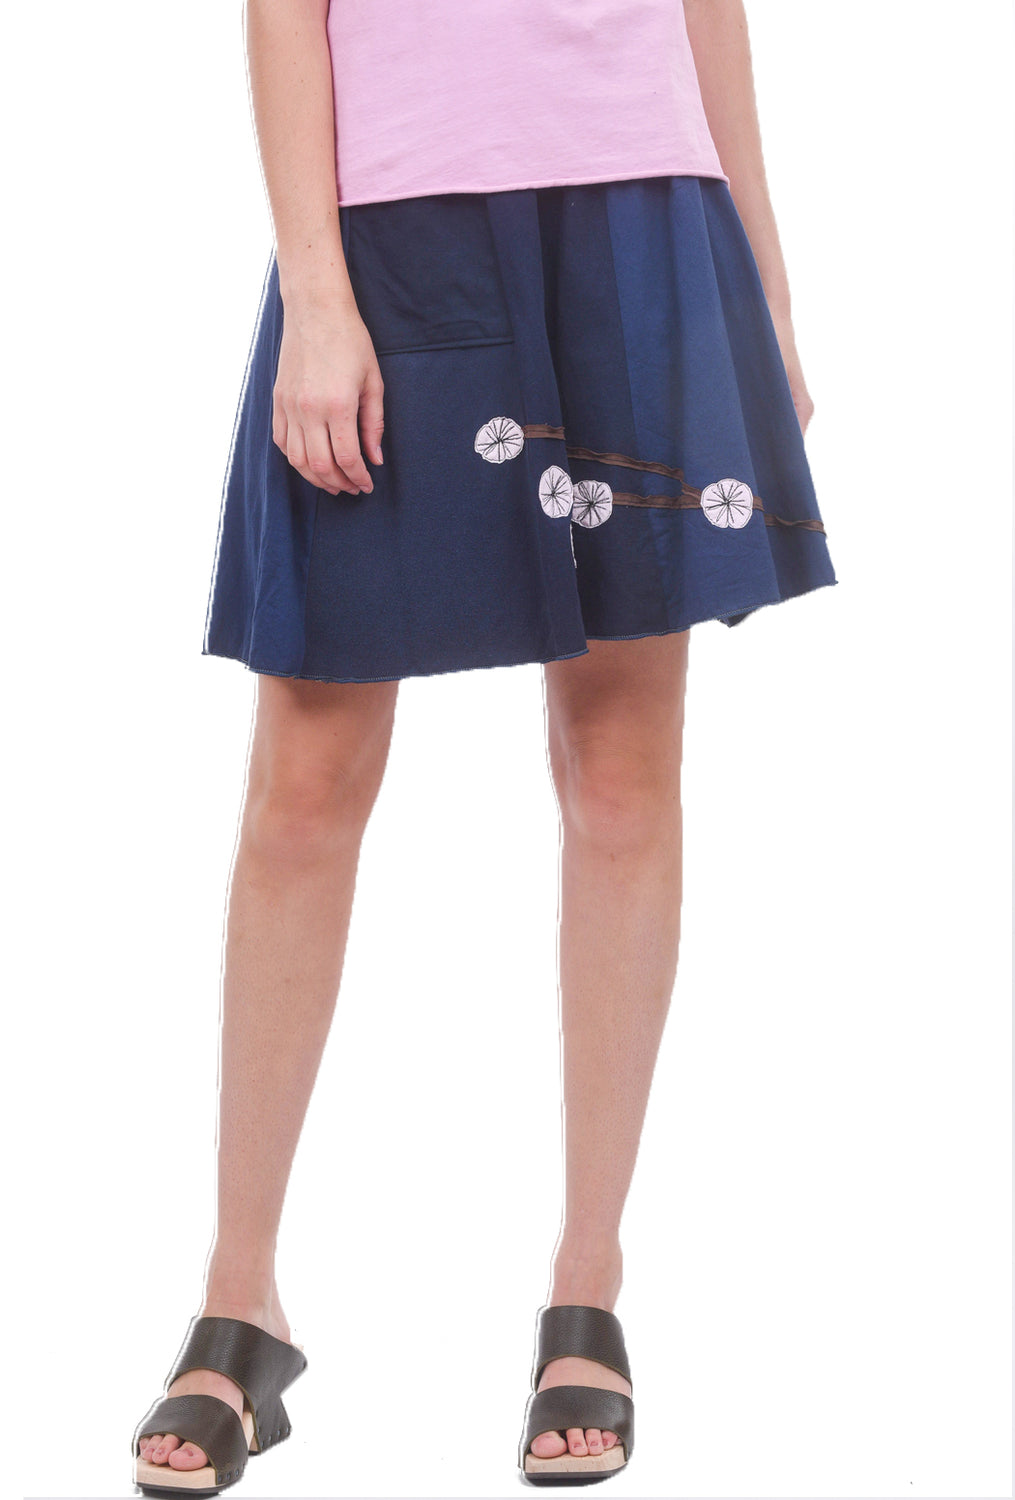 Sardine Clothing Company Shorter Recycled Tee Skirt, Navy/Pink